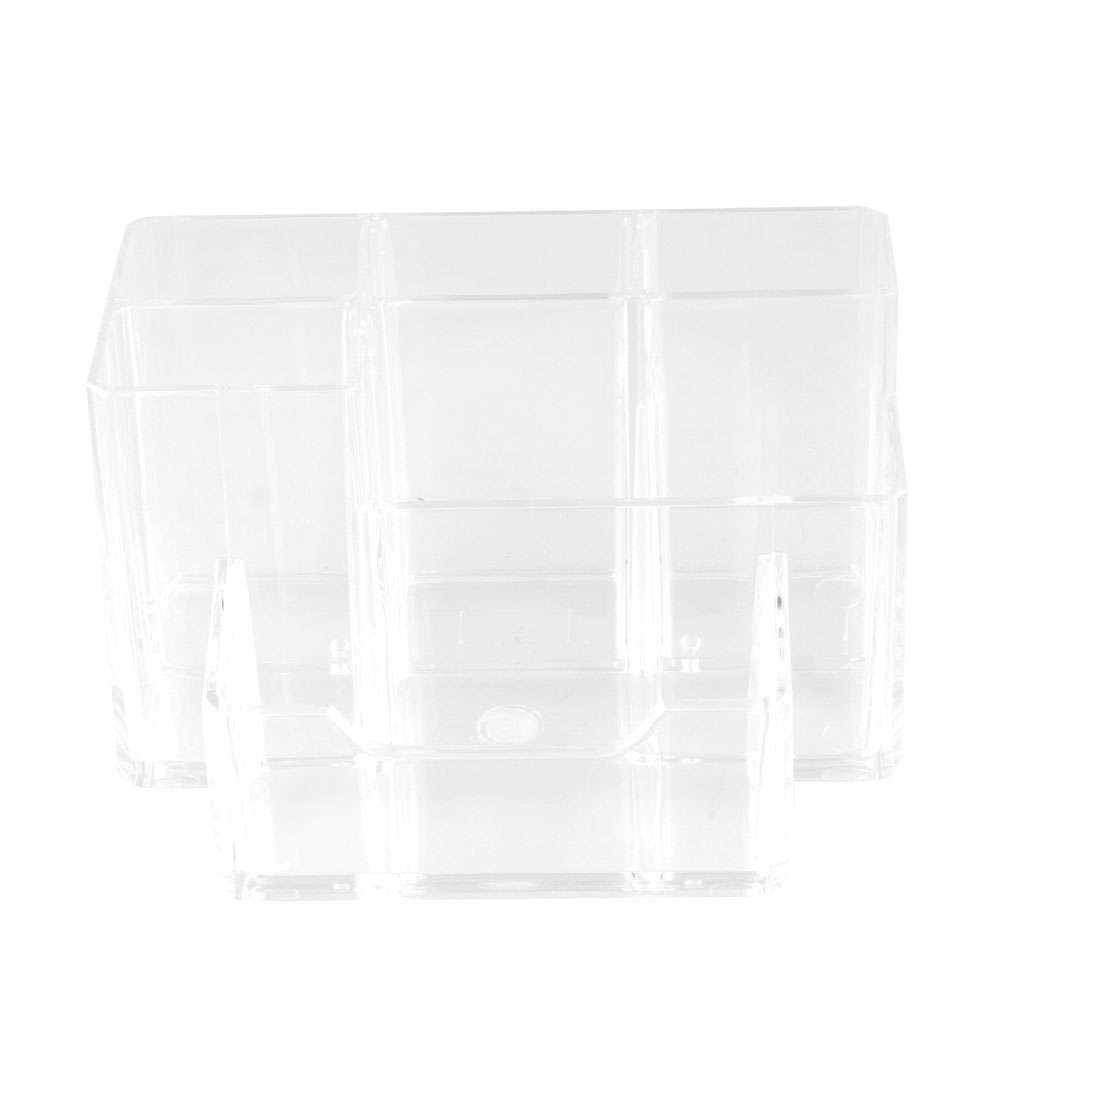 Clear Hard Plastic 6 Sections Muti Function Desk Pen Holder